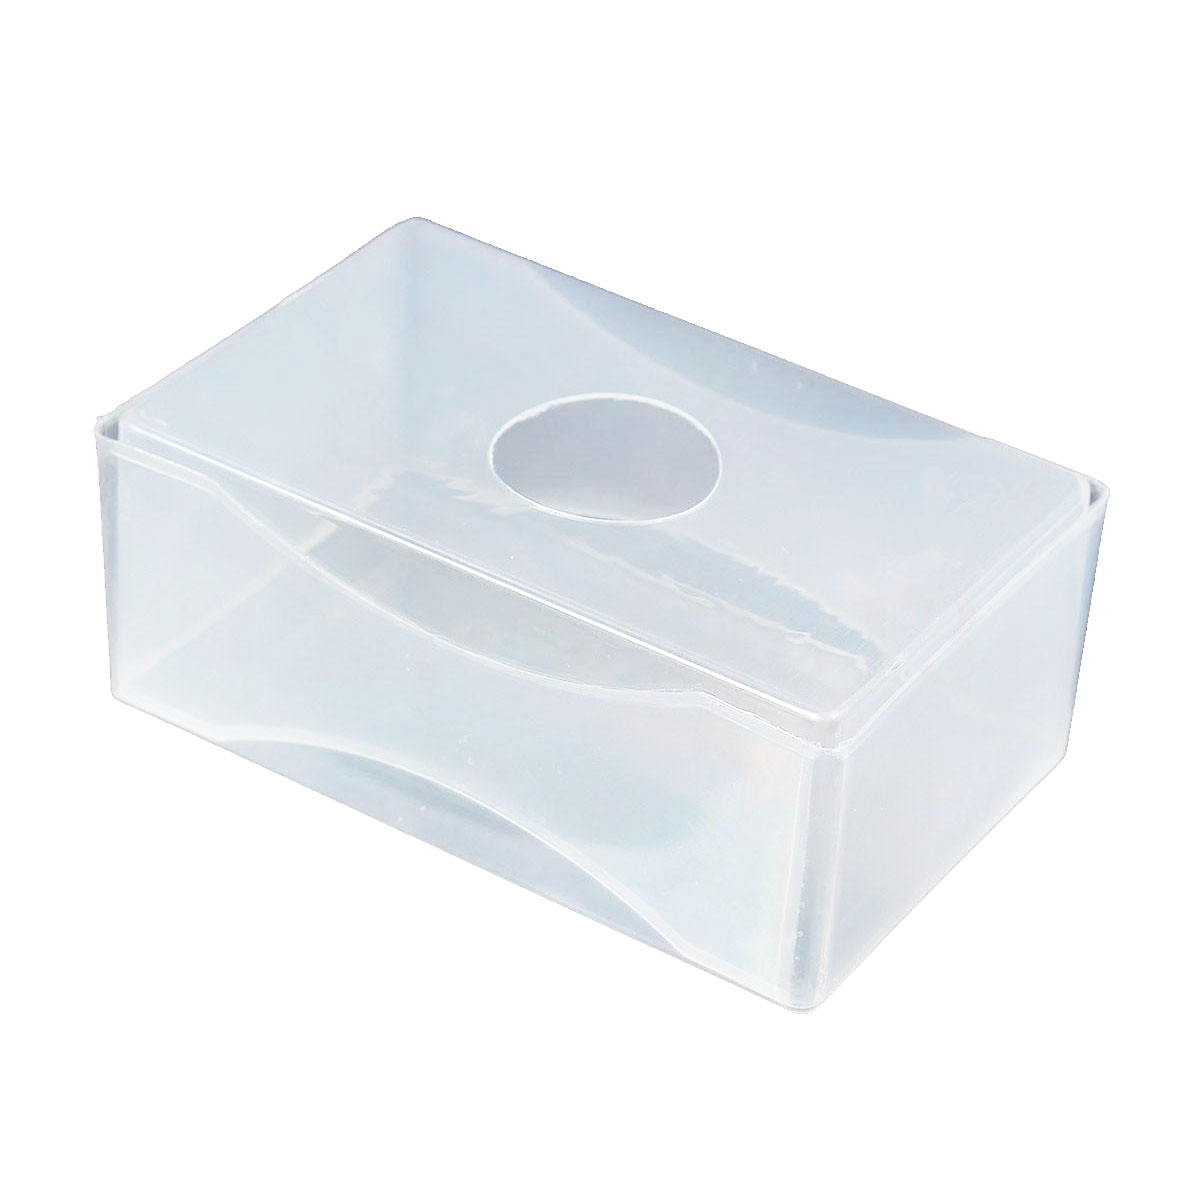 Buy plastic business card boxes and get free shipping on AliExpress.com